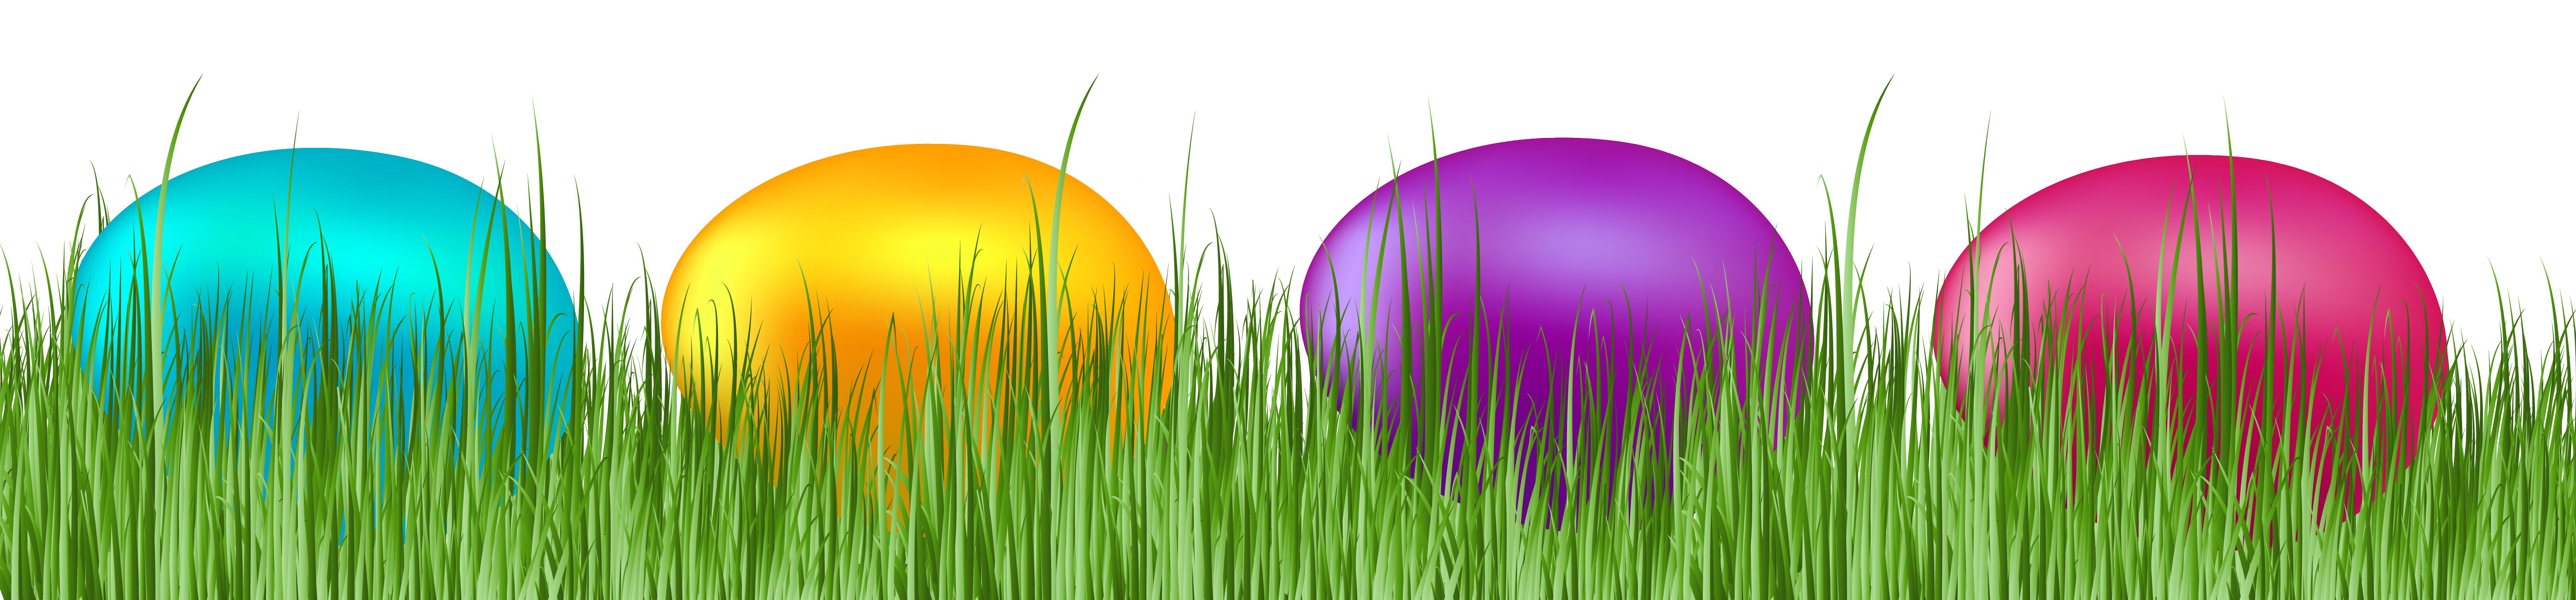 Free Easter Grass Cliparts, Download Free Clip Art, Free.